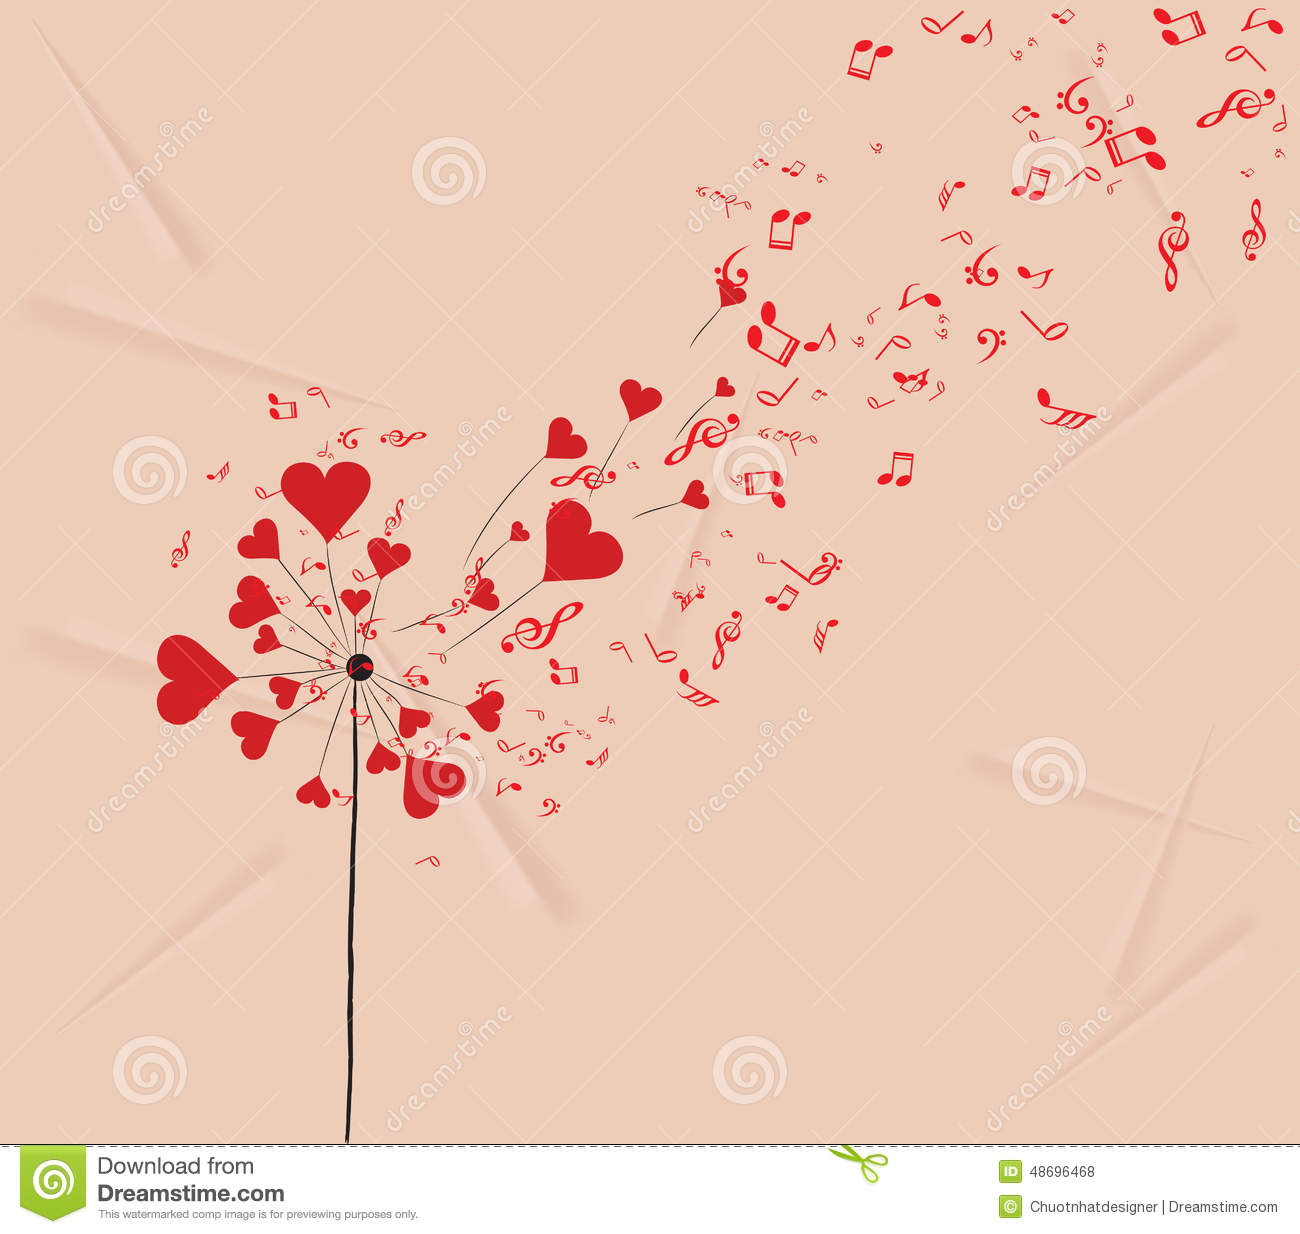 Dandelions hearts and music valentines romantic background The designlover